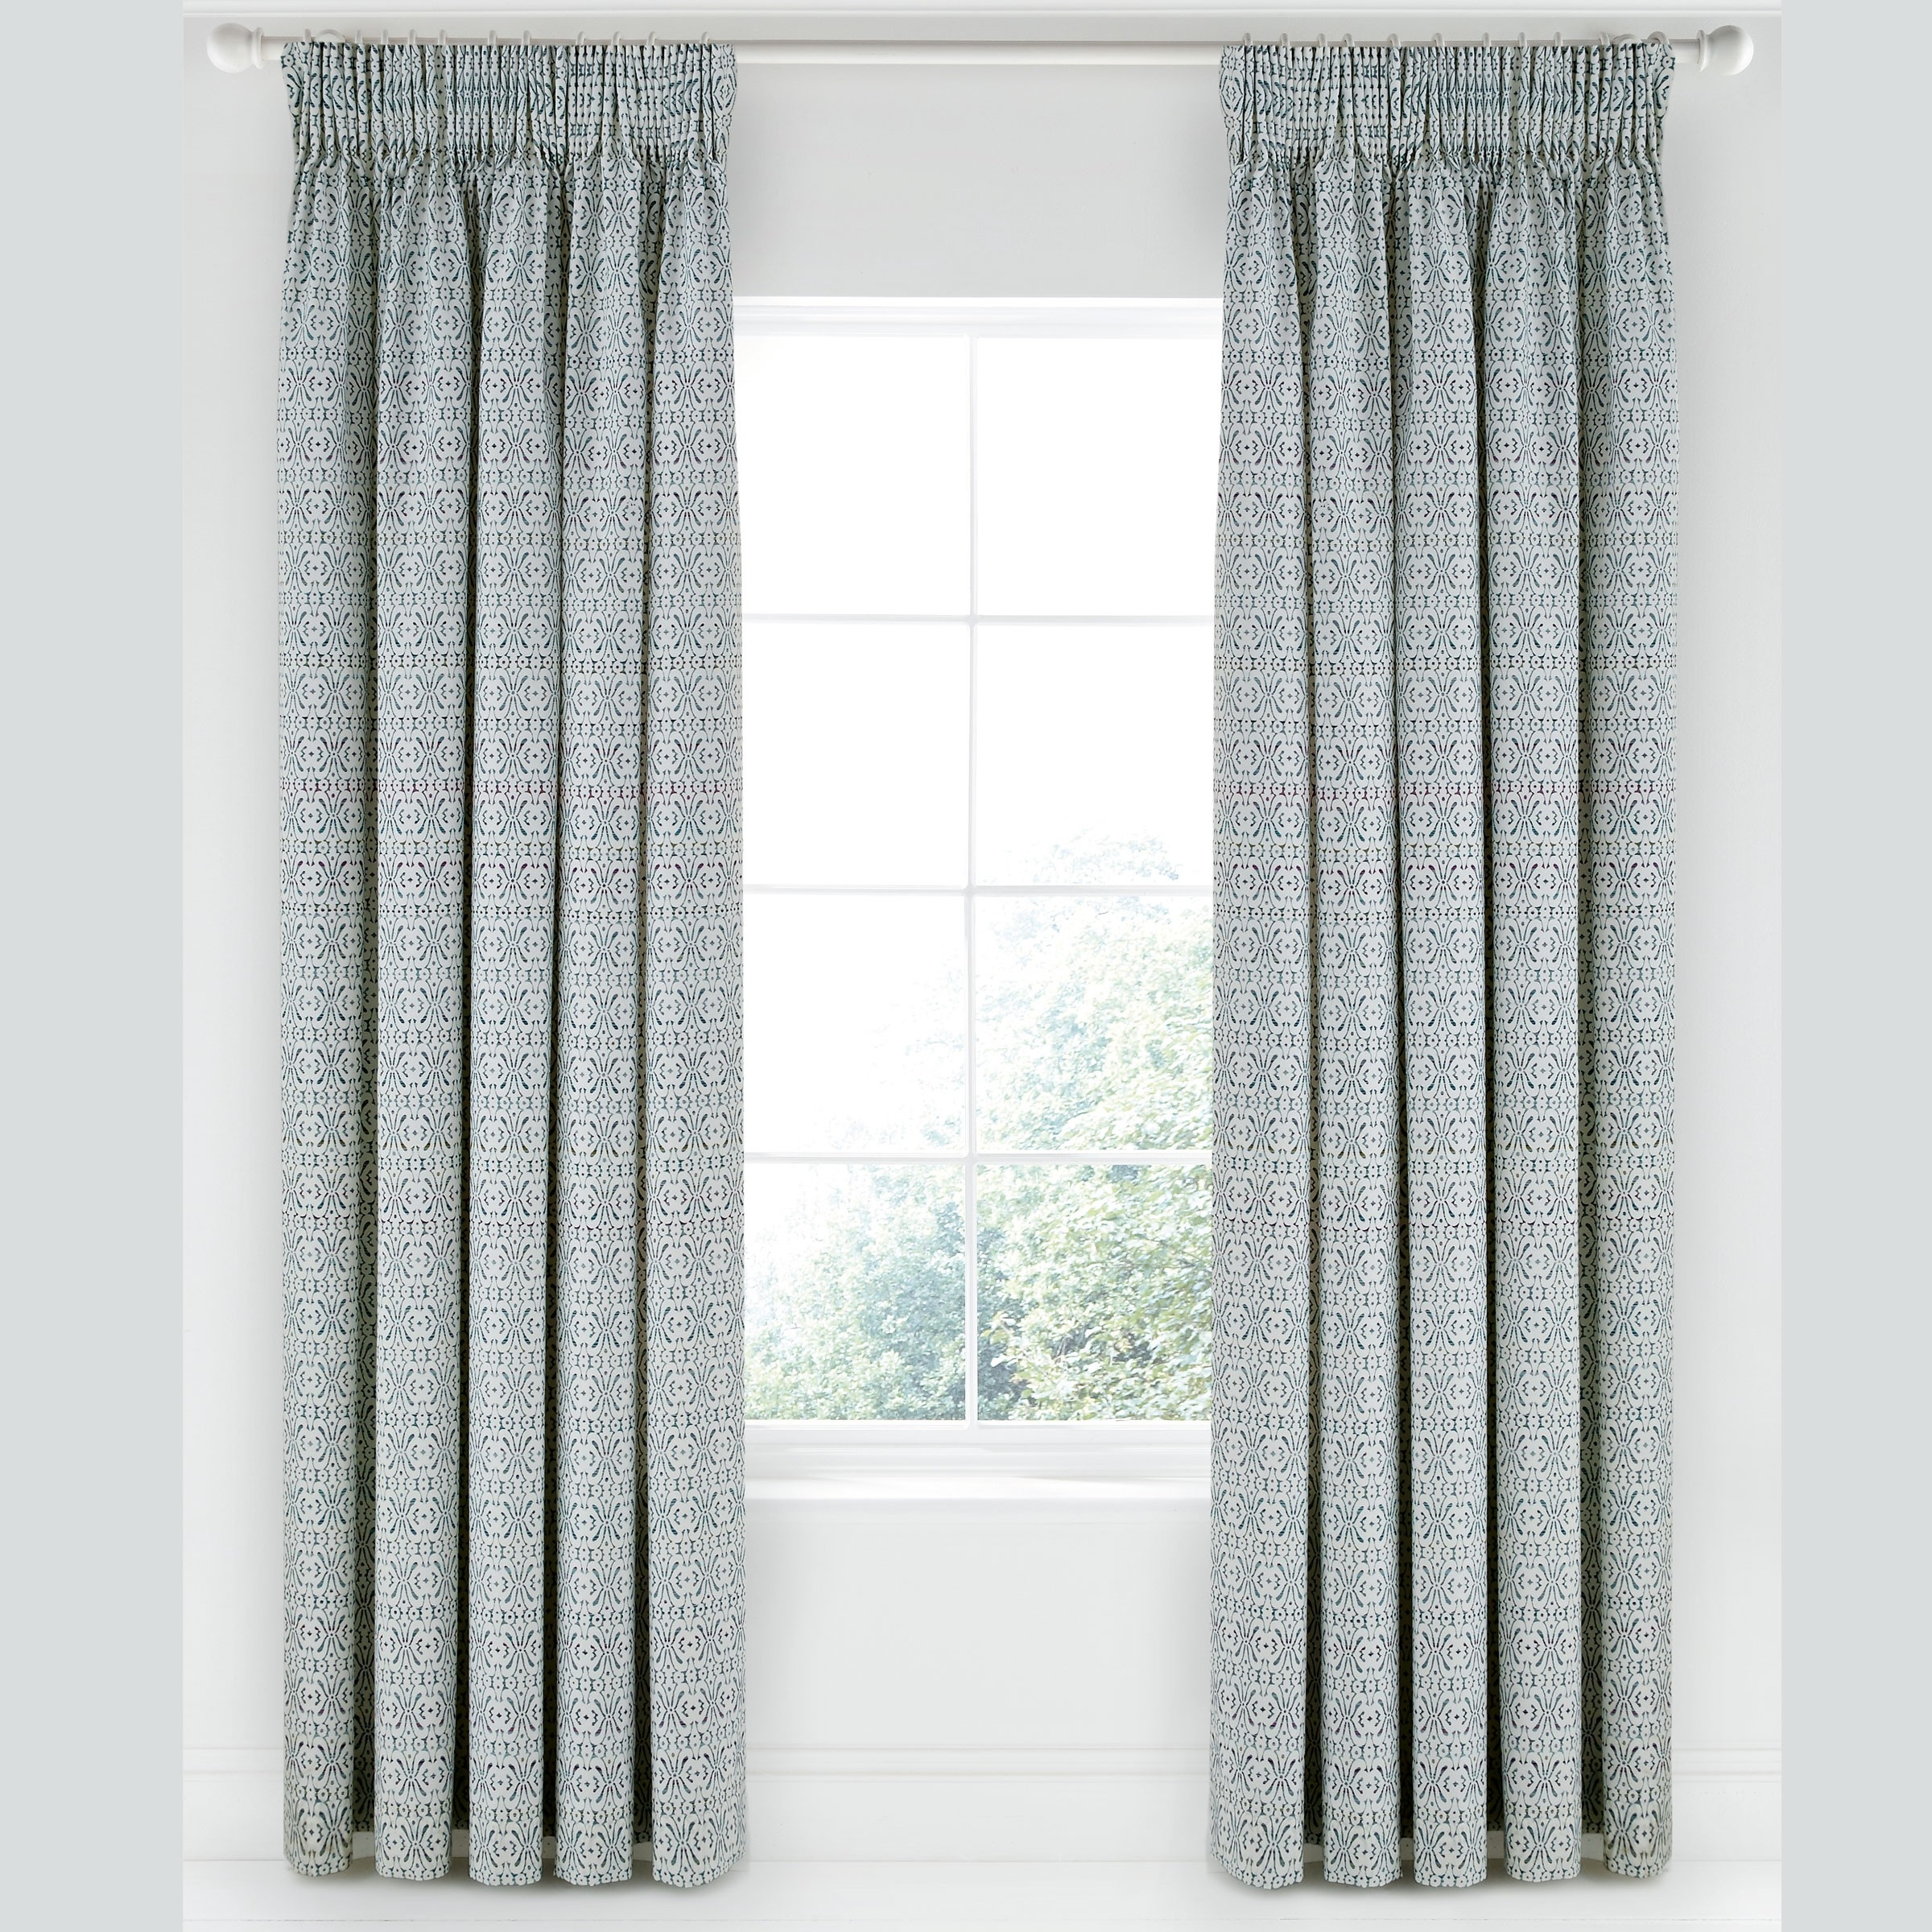 Bedeck 1951 Daya Lined Curtains 66 X 72 Tape Top Monsoon At Inside Monsoon Curtains (Image 2 of 15)